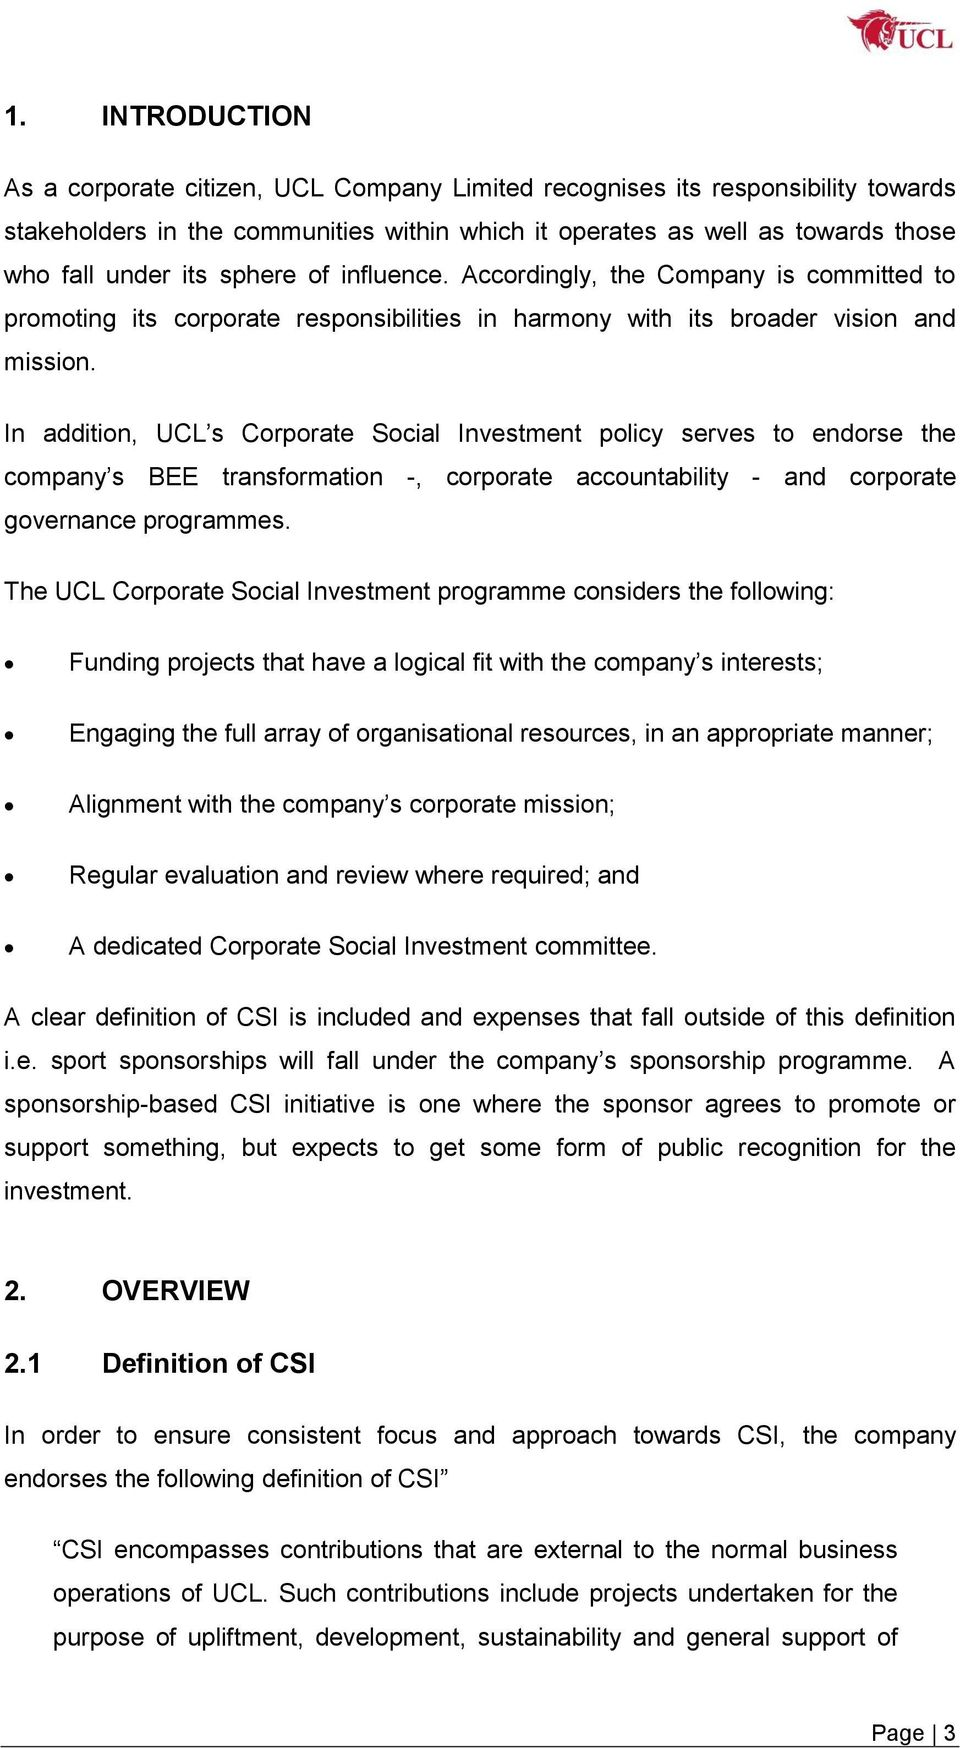 In addition, UCL s Corporate Social Investment policy serves to endorse the company s BEE transformation -, corporate accountability - and corporate governance programmes.